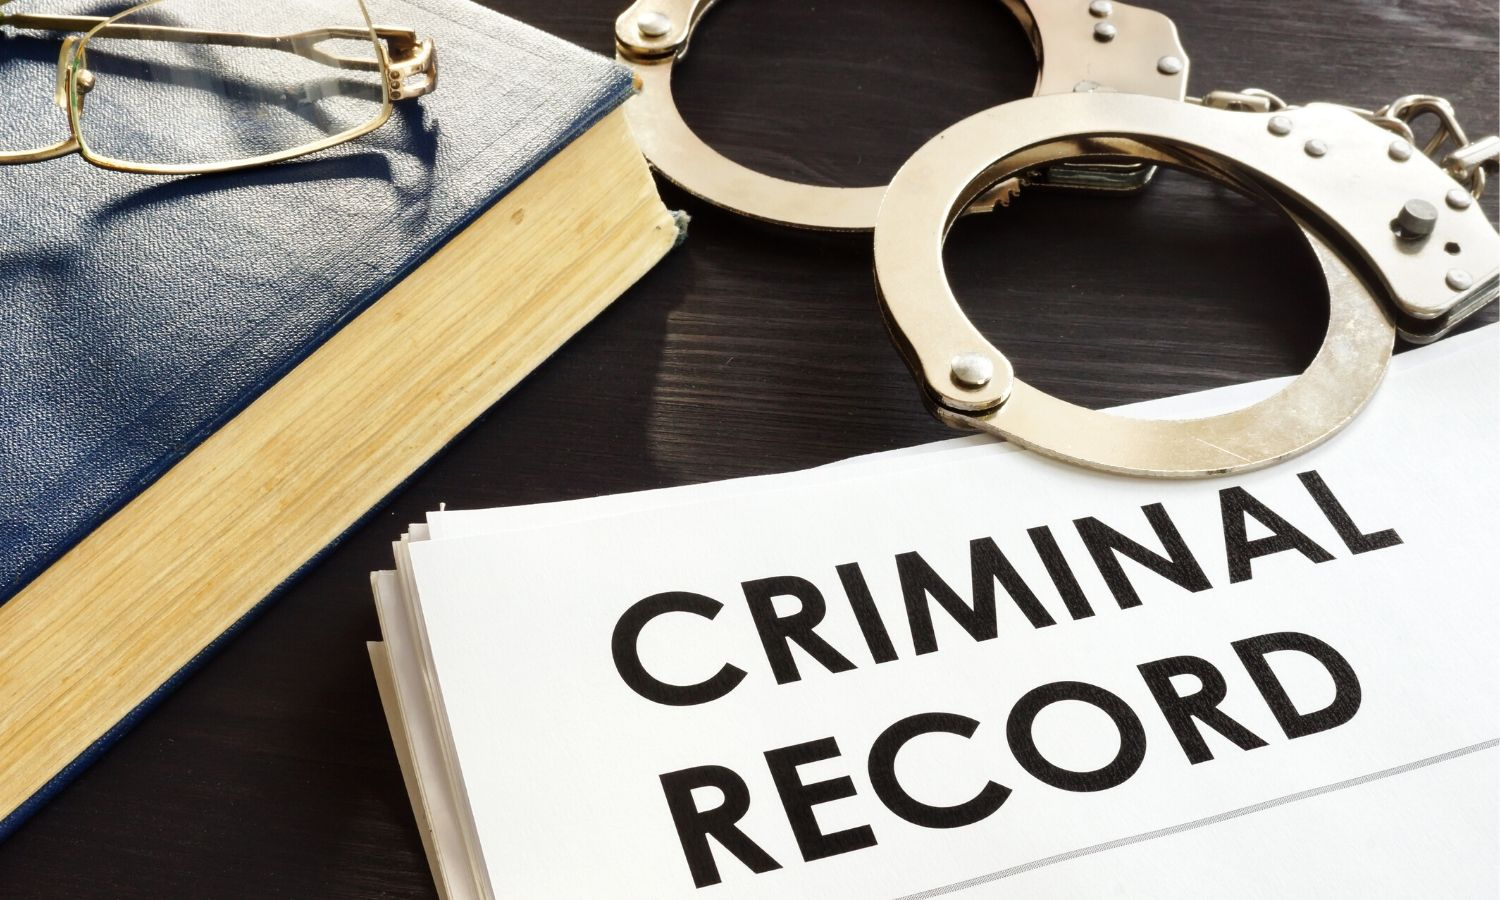 Can You Search For A Criminal Record Online?